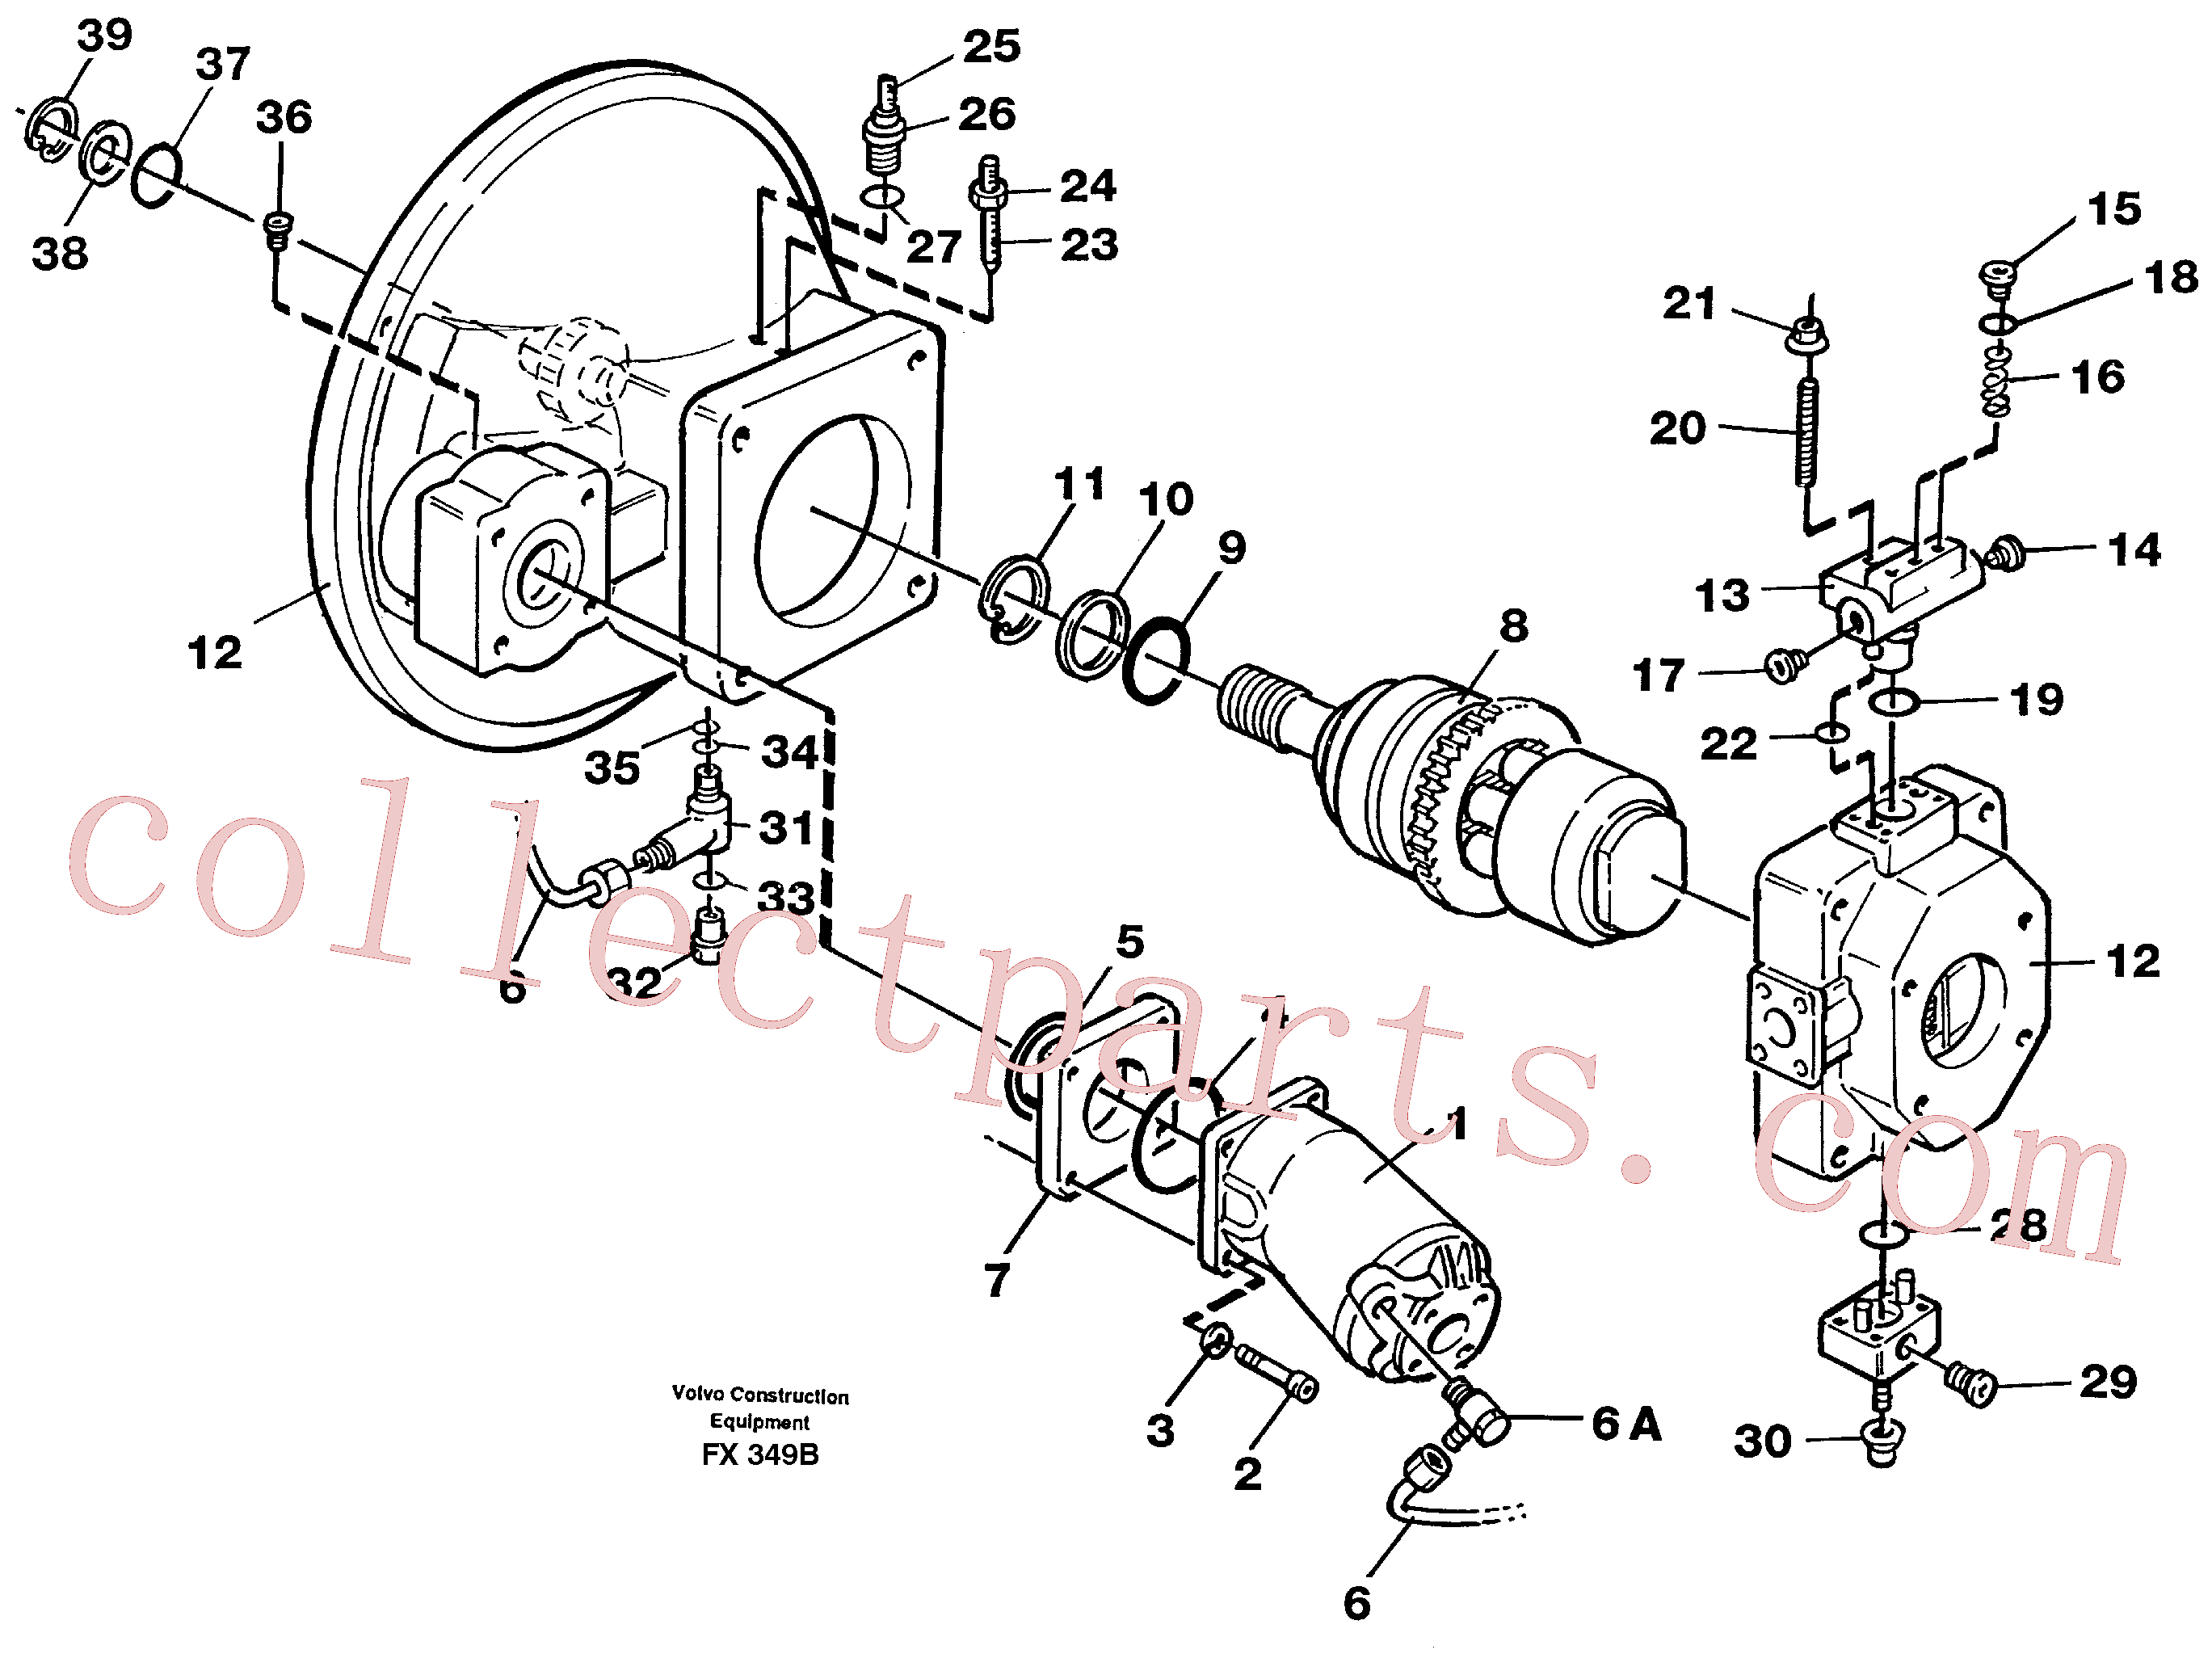 VOE11992751 for Volvo Pump gear box(FX349B assembly)